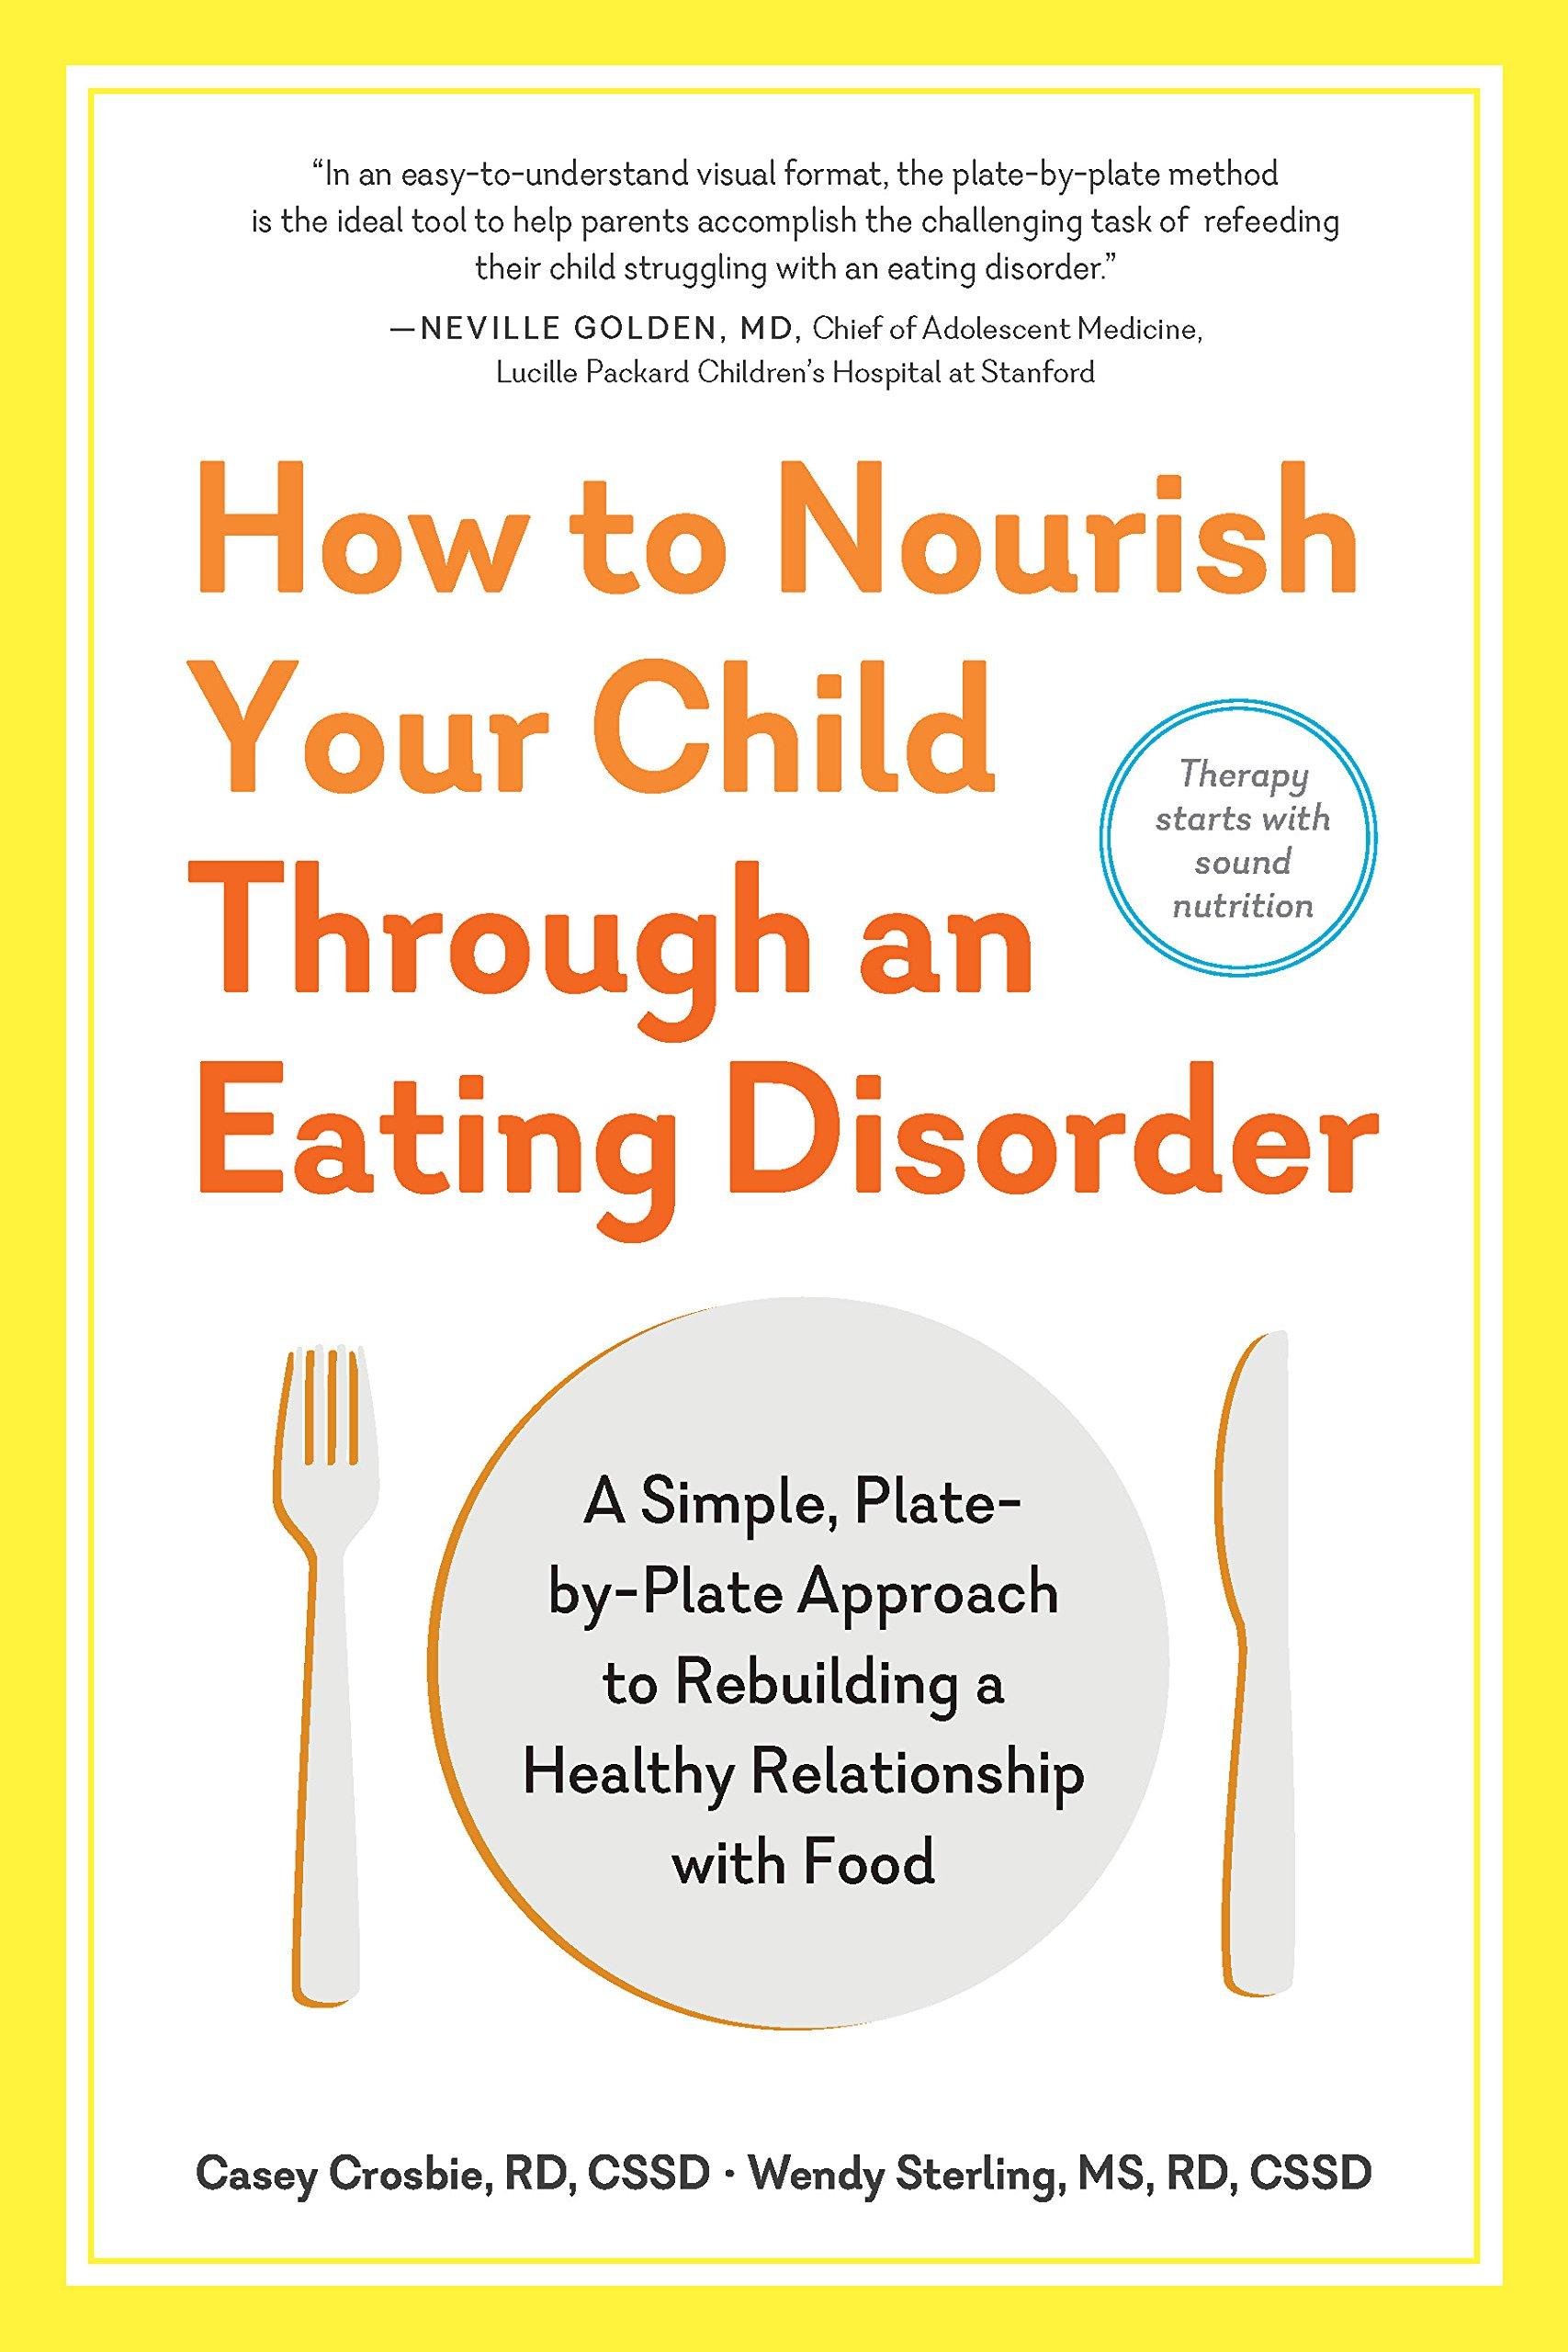 How to nourish your child through an eating disorder a simple how to nourish your child through an eating disorder a simple plate by plate approach to rebuilding a healthy relationship with food casey crosbie rd nvjuhfo Images